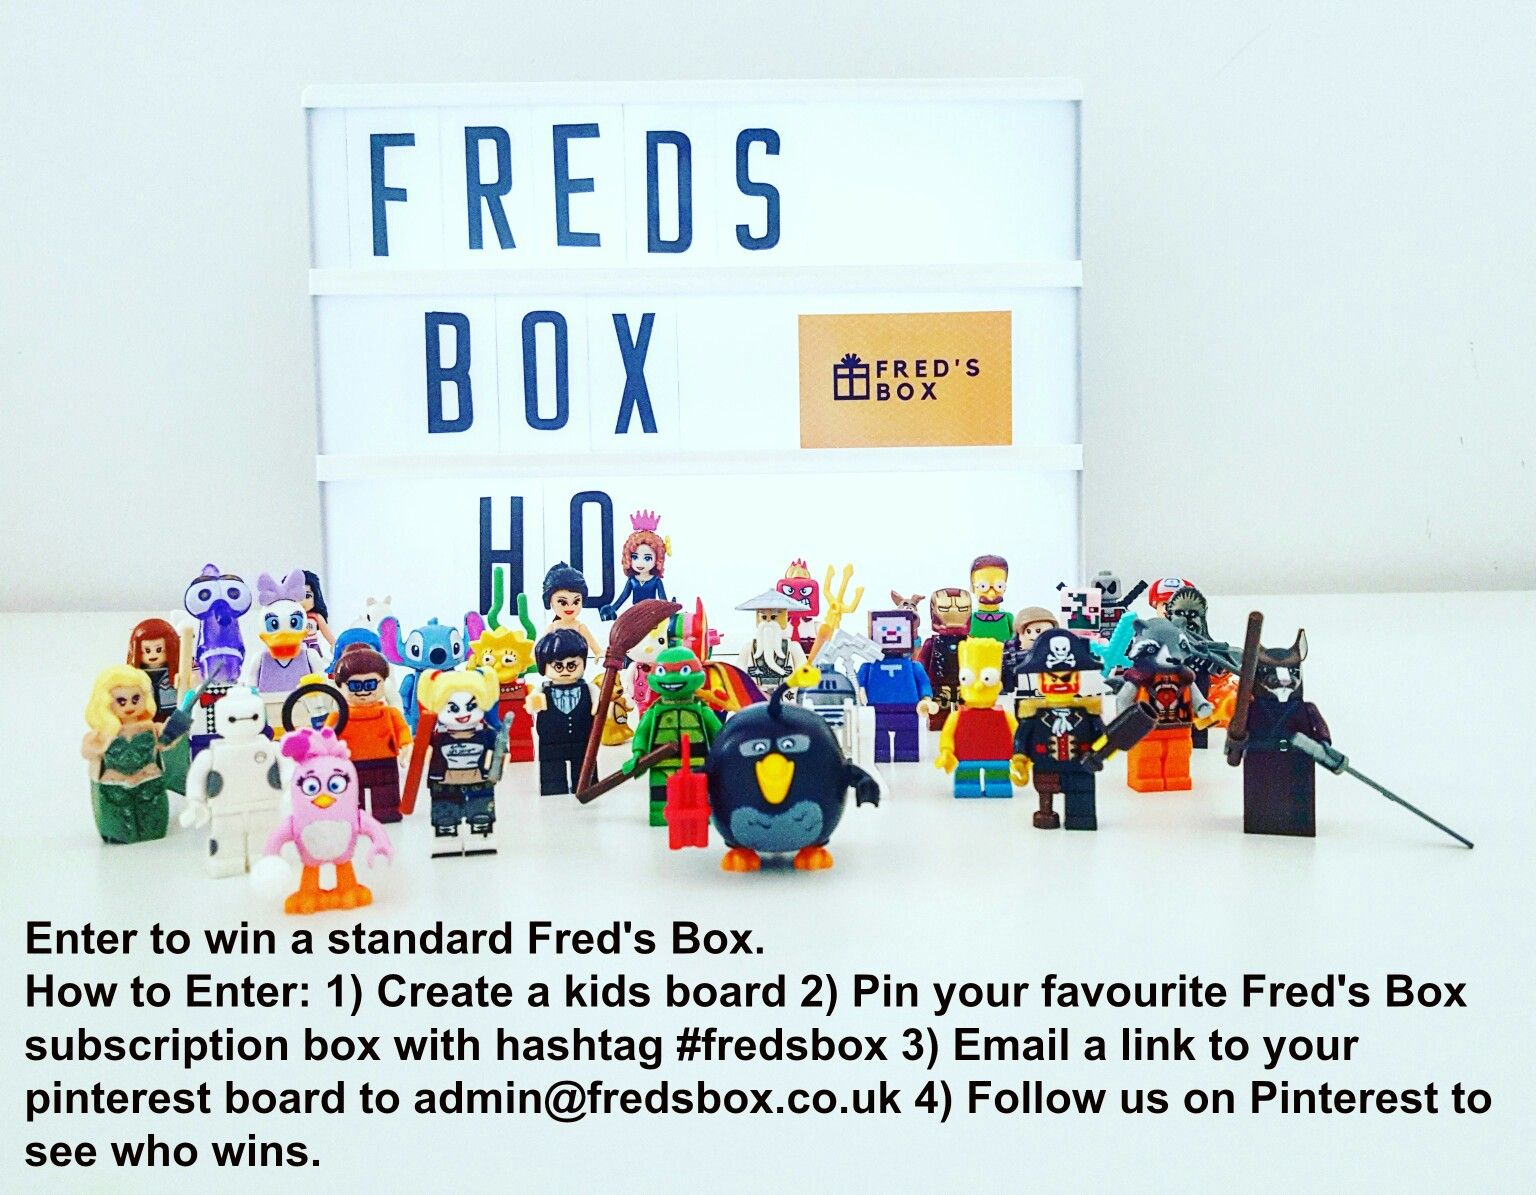 Fred's box competition to win a standard Fred's Box. For competition rules please visit http://fredsbox.co.uk/p/competition-rules